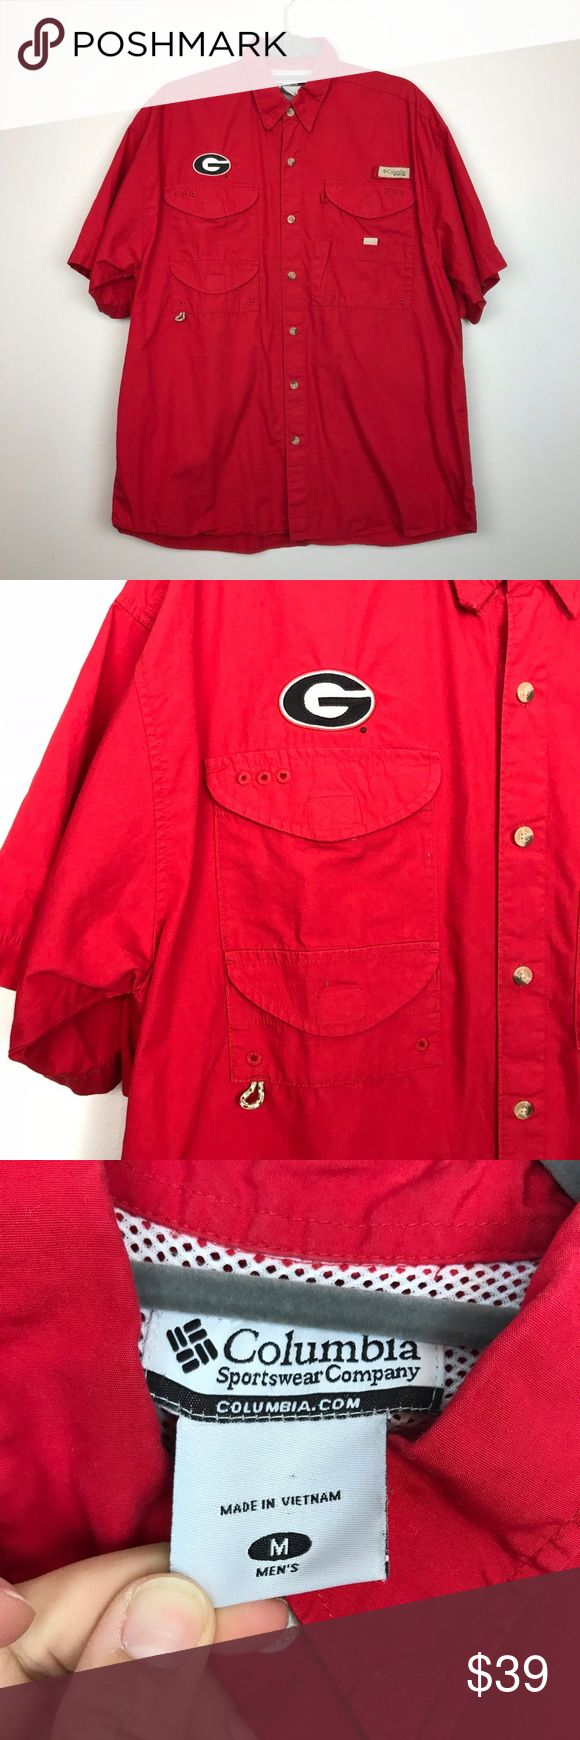 "COLUMBIA {M} Red University of Georgia PFG Shirt COLUMBIA {M} Red University of Georgia Bulldogs PFG Vented Shirt  Size Medium Bust 48"" Length 30"" Measured flat  Excellent condition - no flaws Columbia Shirts Casual Button Down Shirts"